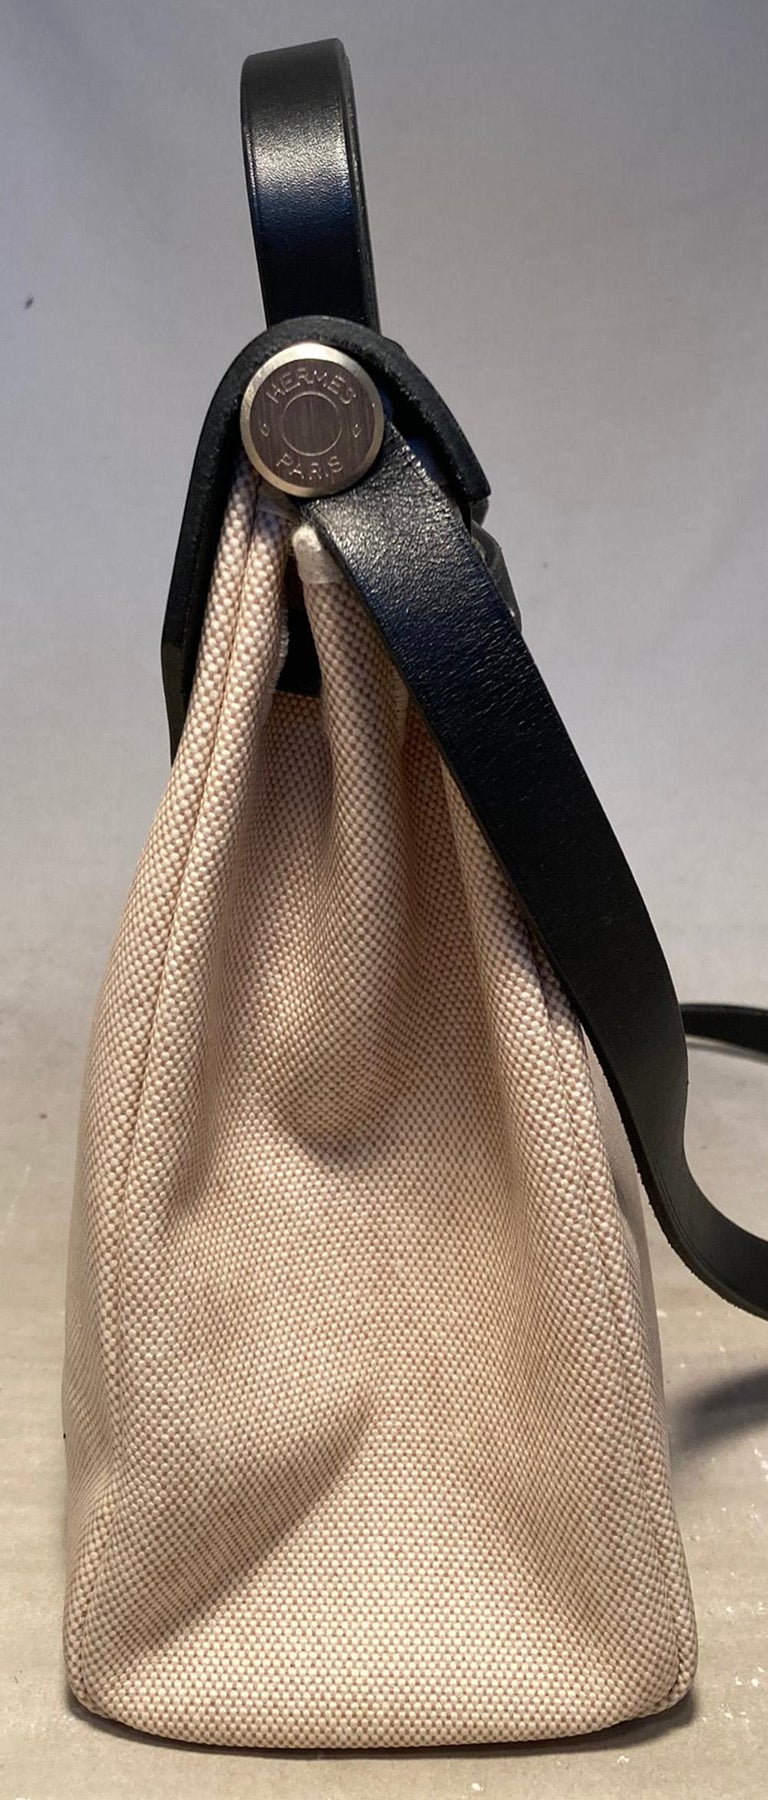 Hermes Black and Beige Canvas Herbag Tote  In Good Condition For Sale In Philadelphia, PA